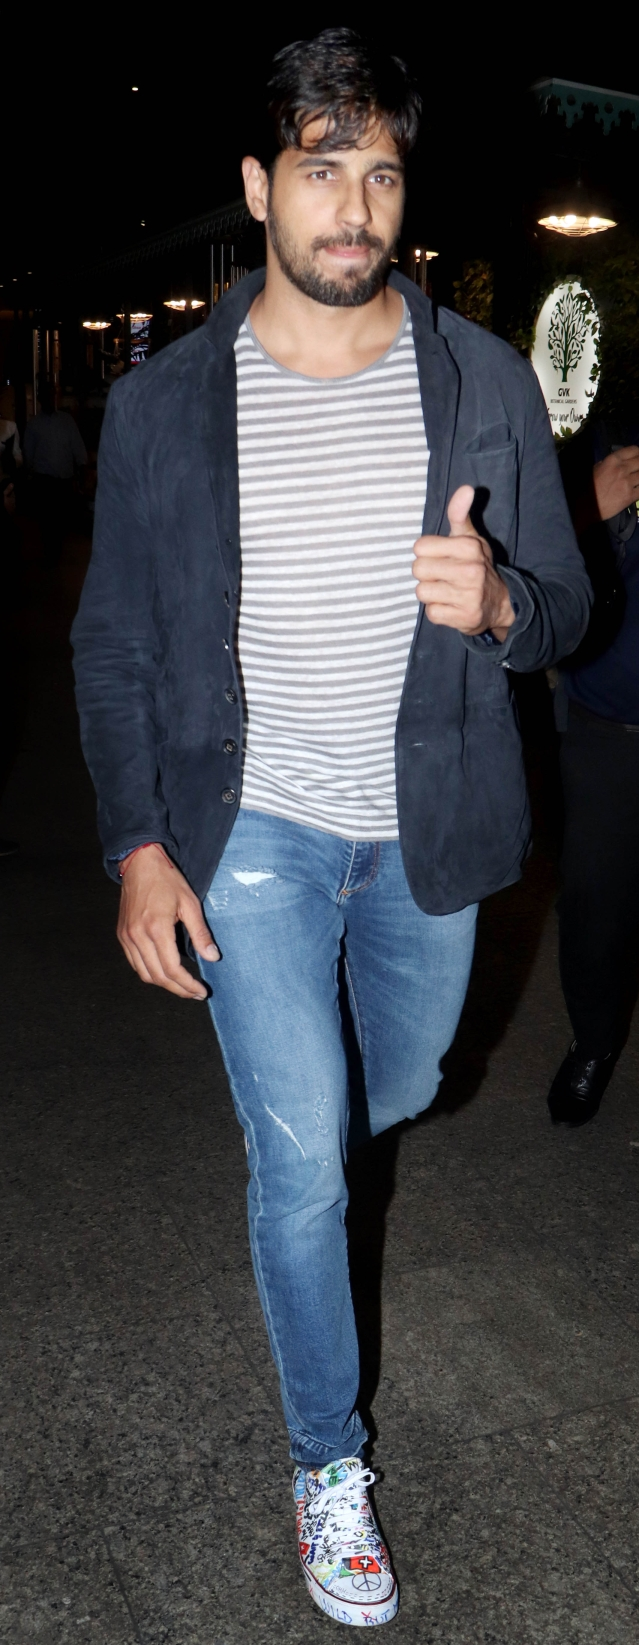 Sidharth Malhotra spotted at the airport.